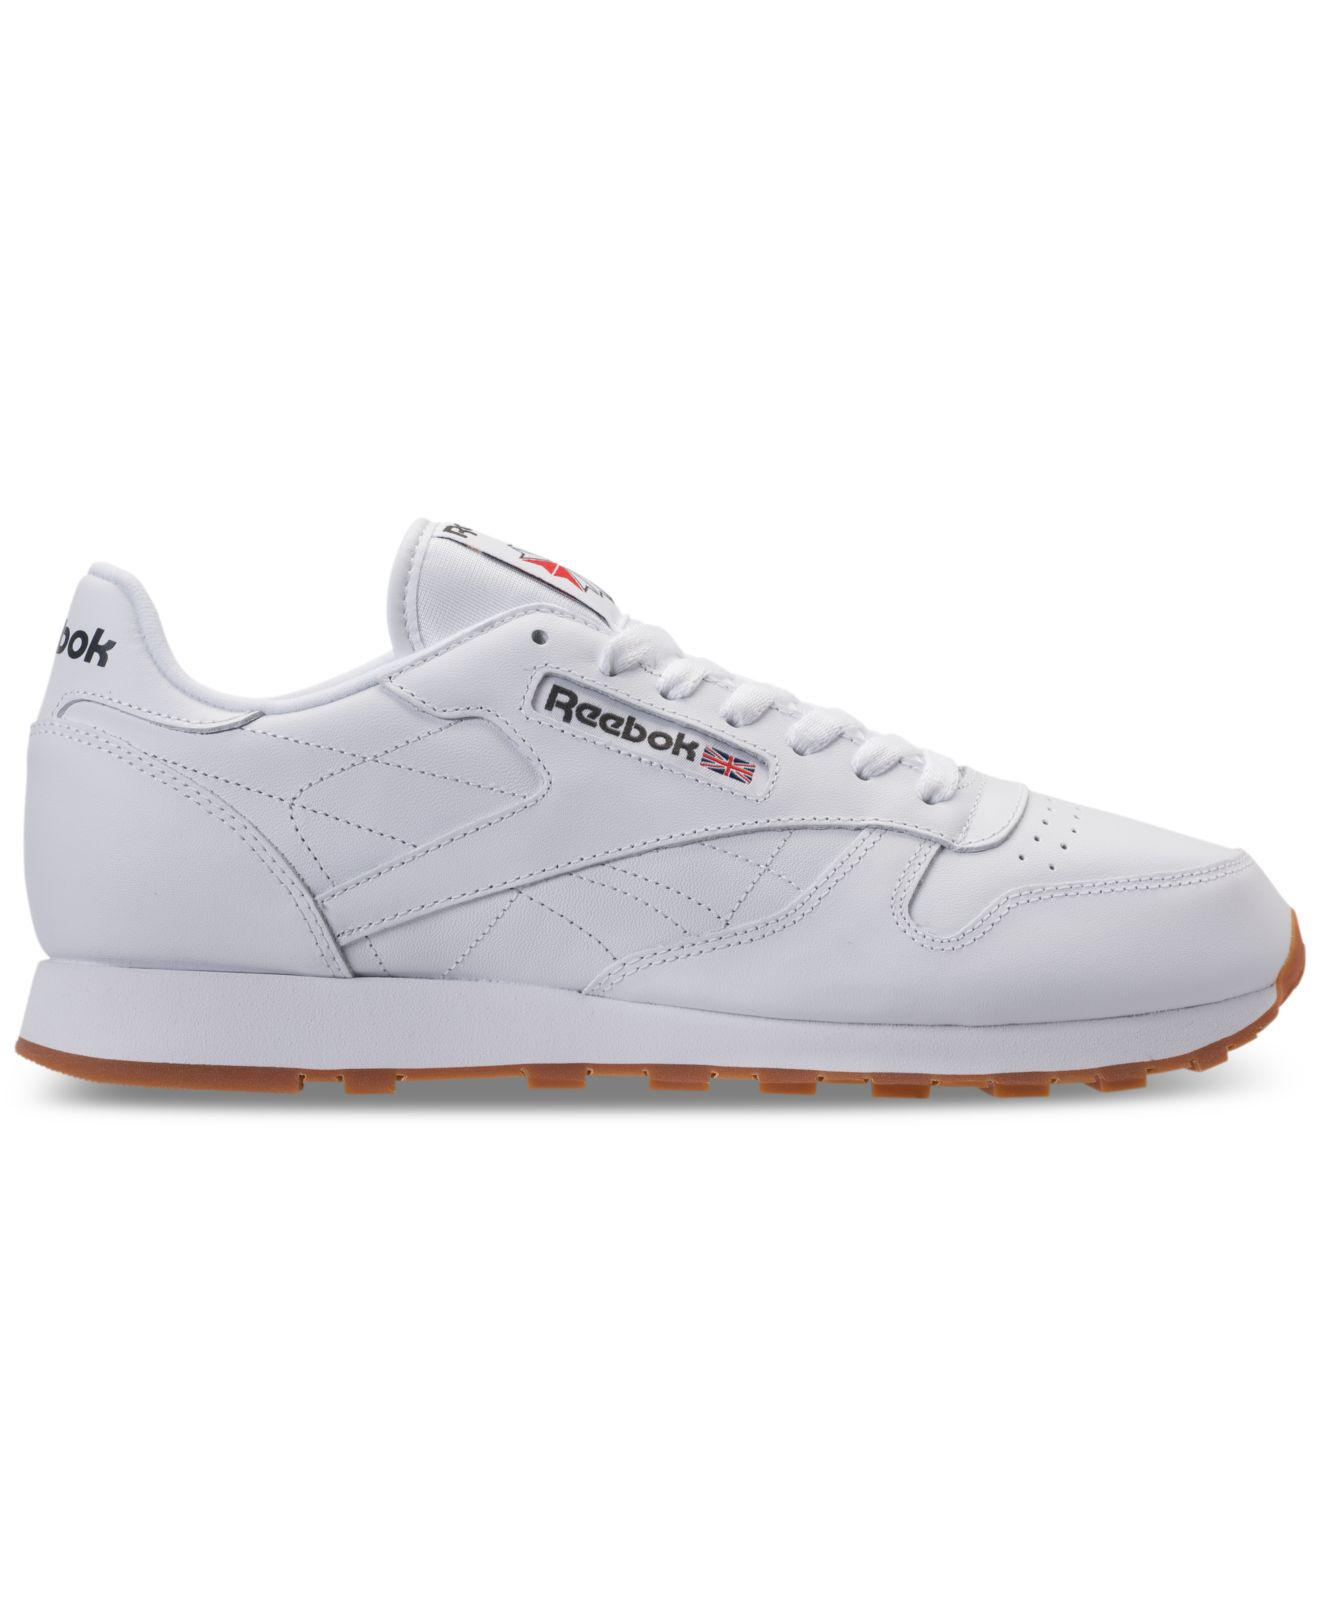 5c9dfccd53e Lyst - Reebok Men s Classic Leather Casual Sneakers From Finish Line in  White for Men